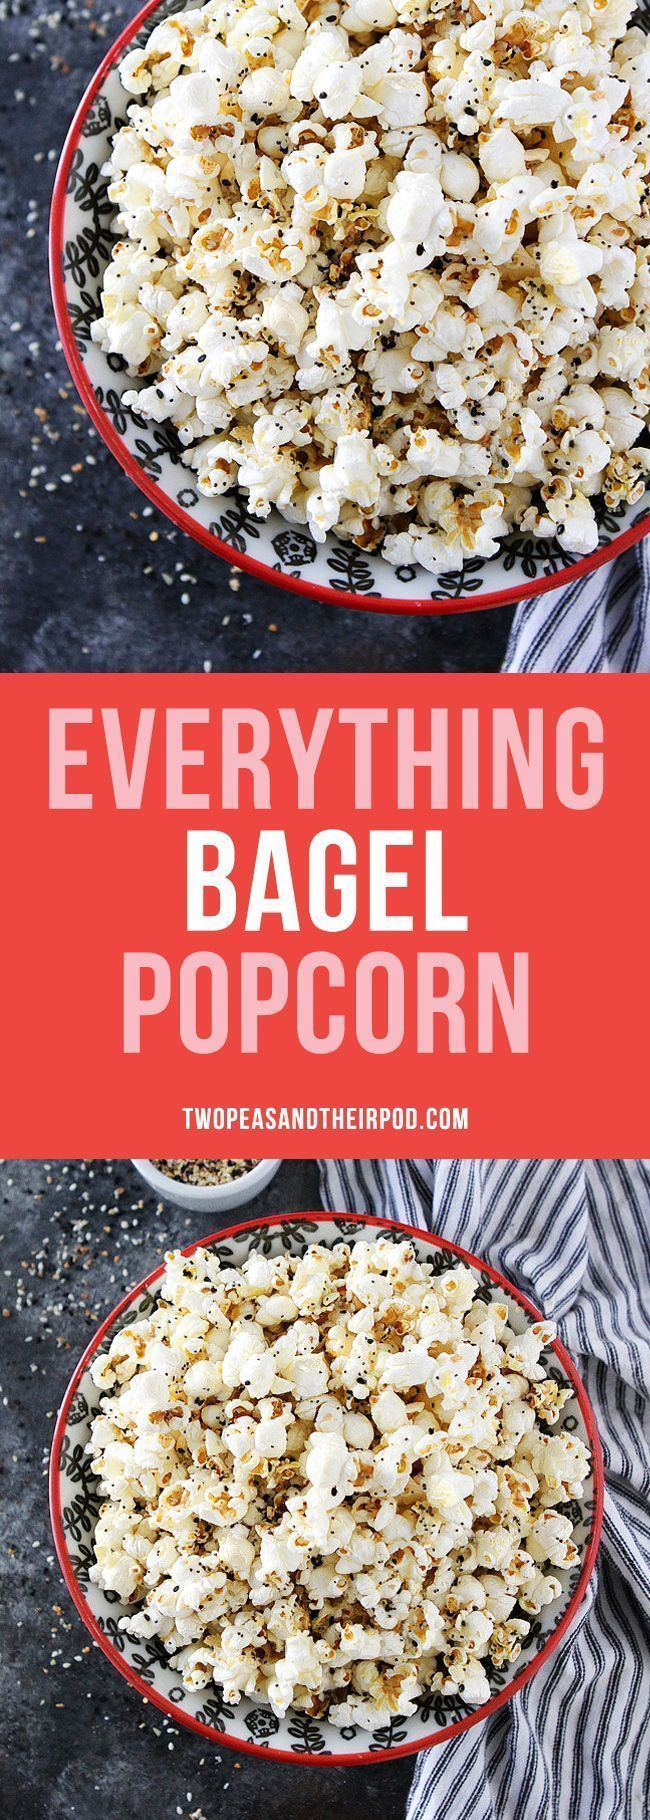 Everything Bagel Popcorn-hot buttery popcorn topped with everything bagel season! This easy popcorn snack is perfect for movie night game day or every day snacking! #GlutenFree #popcorn #movienightsnacks Everything Bagel Popcorn-hot buttery popcorn topped with everything bagel season! This easy popcorn snack is perfect for movie night game day or every day snacking! #GlutenFree #popcorn #movienightsnacks Everything Bagel Popcorn-hot buttery popcorn topped with everything bagel season! This easy #movienightsnacks